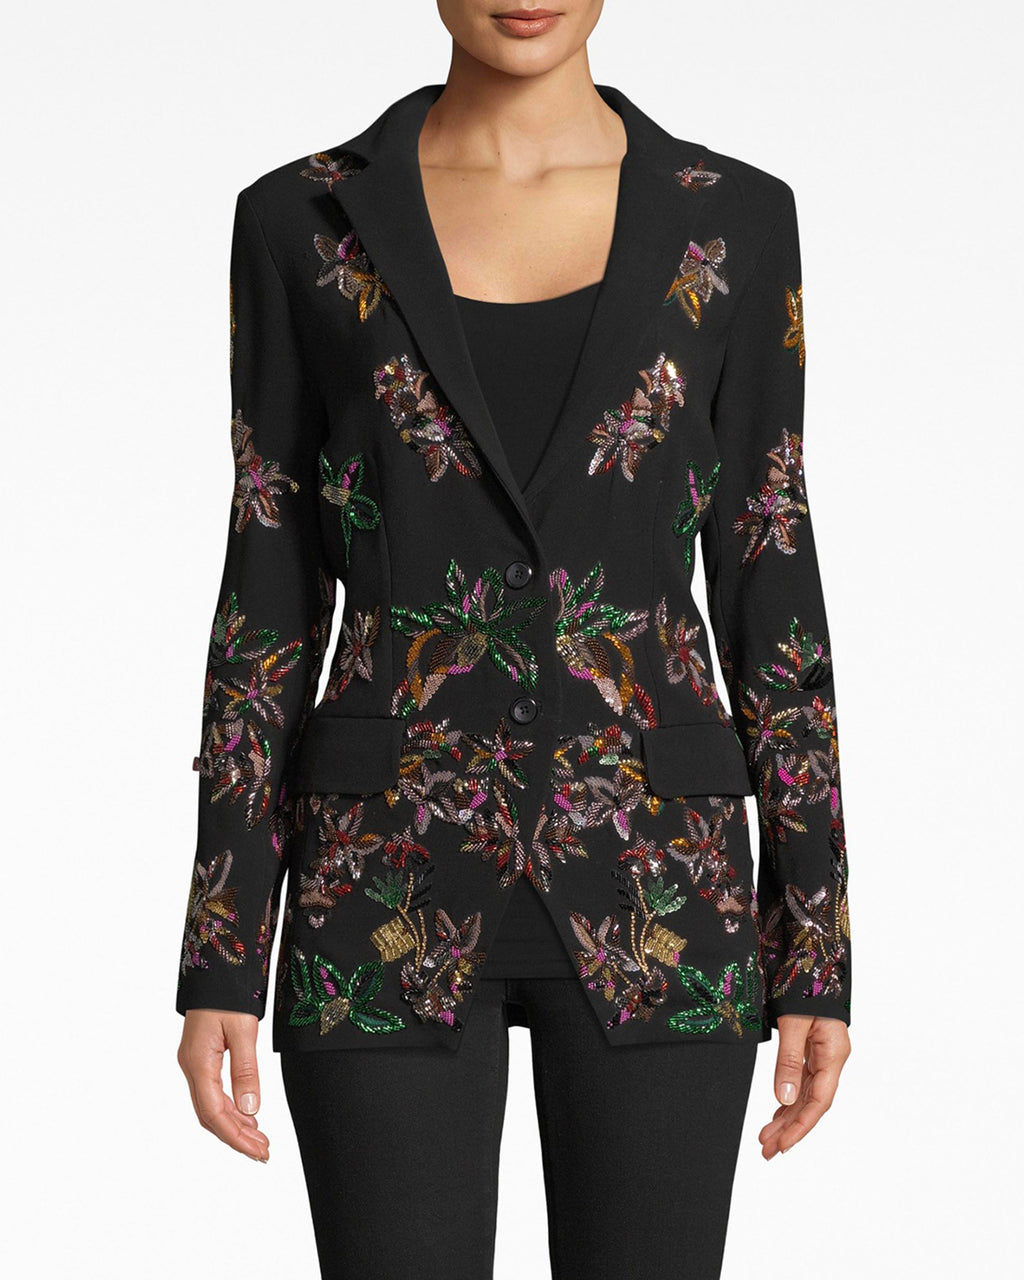 EA10012 - AUTUMN DREAM EMBELLISHED BLAZER - outerwear - blazers - She means business. Metallic embellishments elevate this fitted blazer into a knockout evening piece. Exposed front buttons for closure.